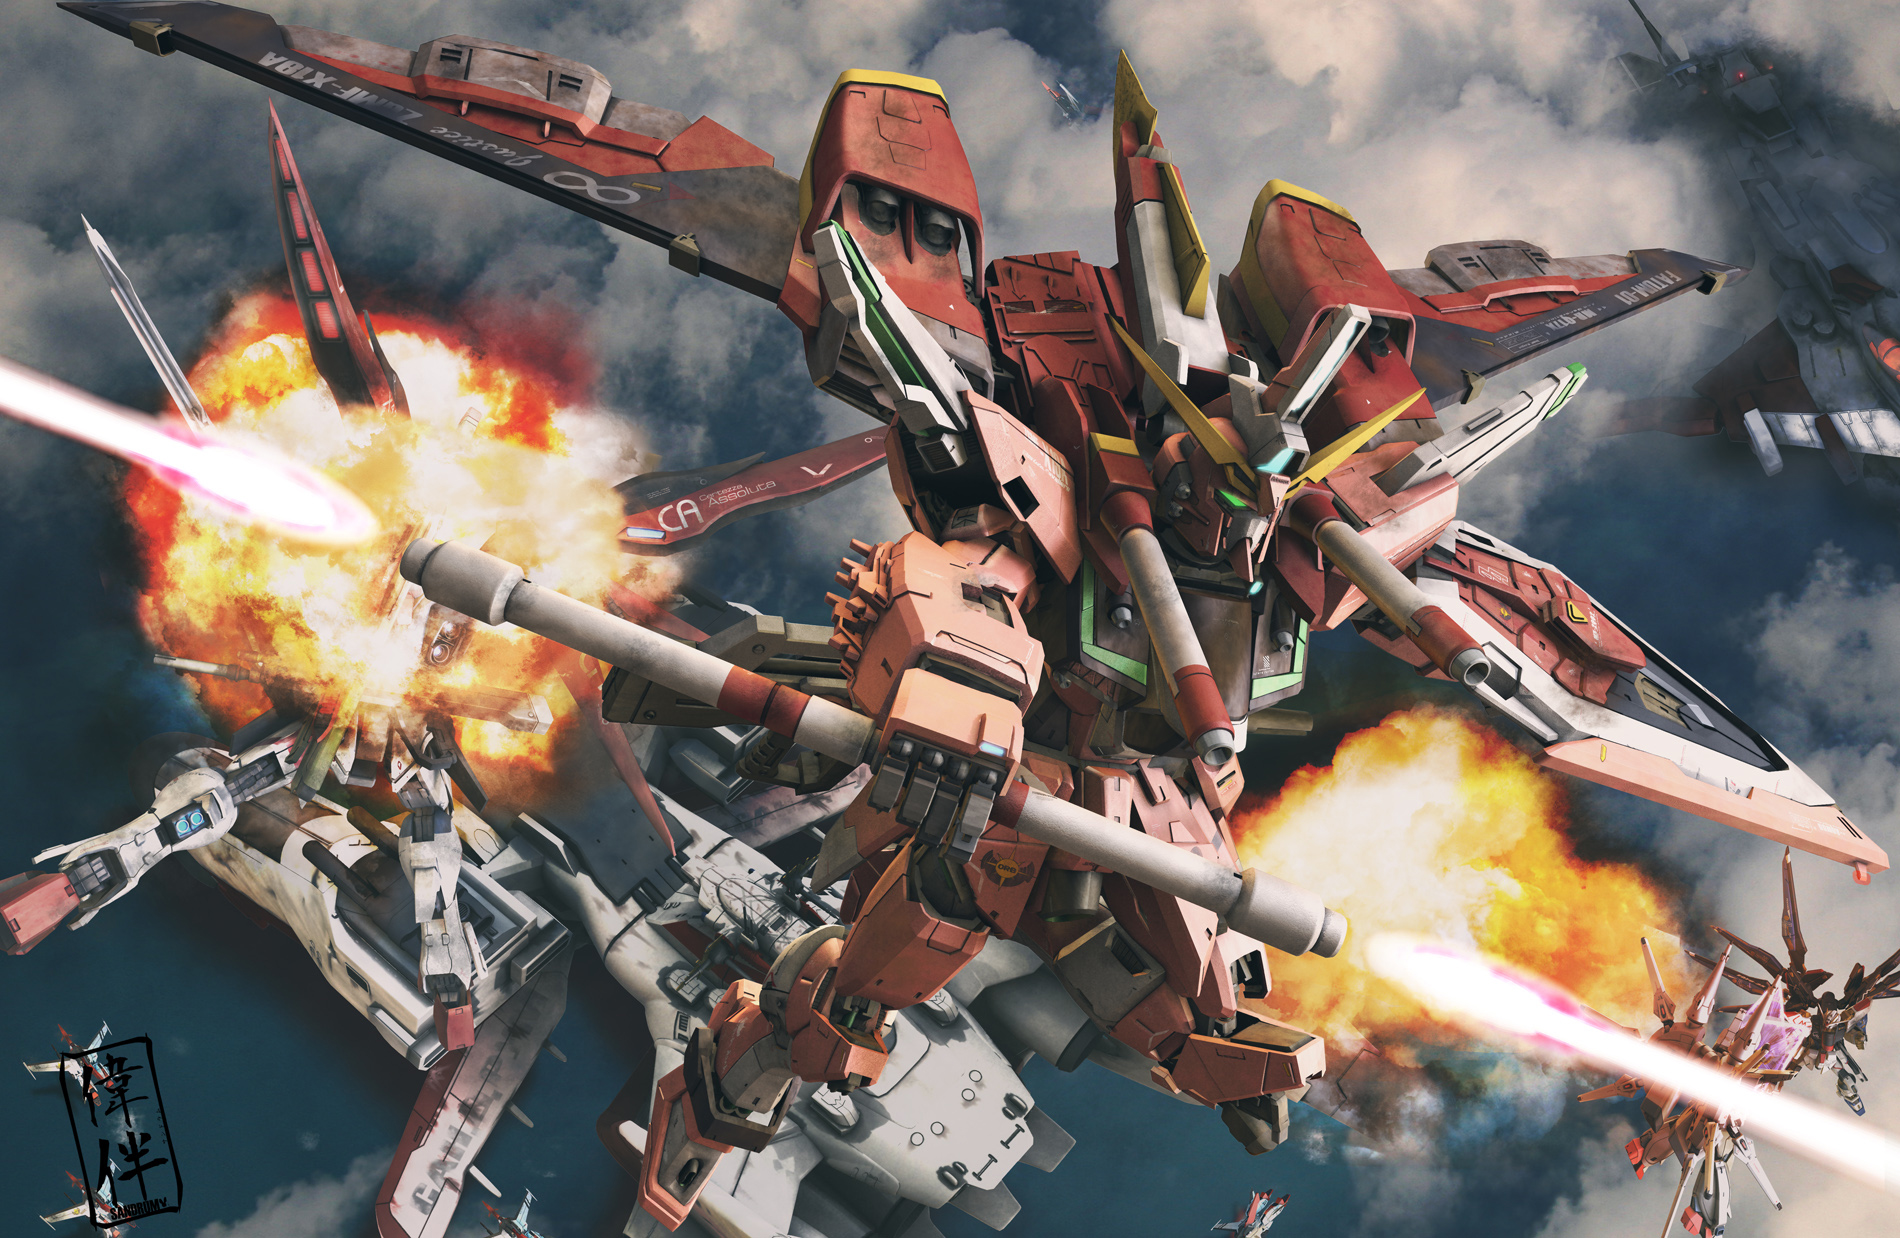 Gundam New Awesome Hd Wallpapers 2015 All Hd Wallpapers